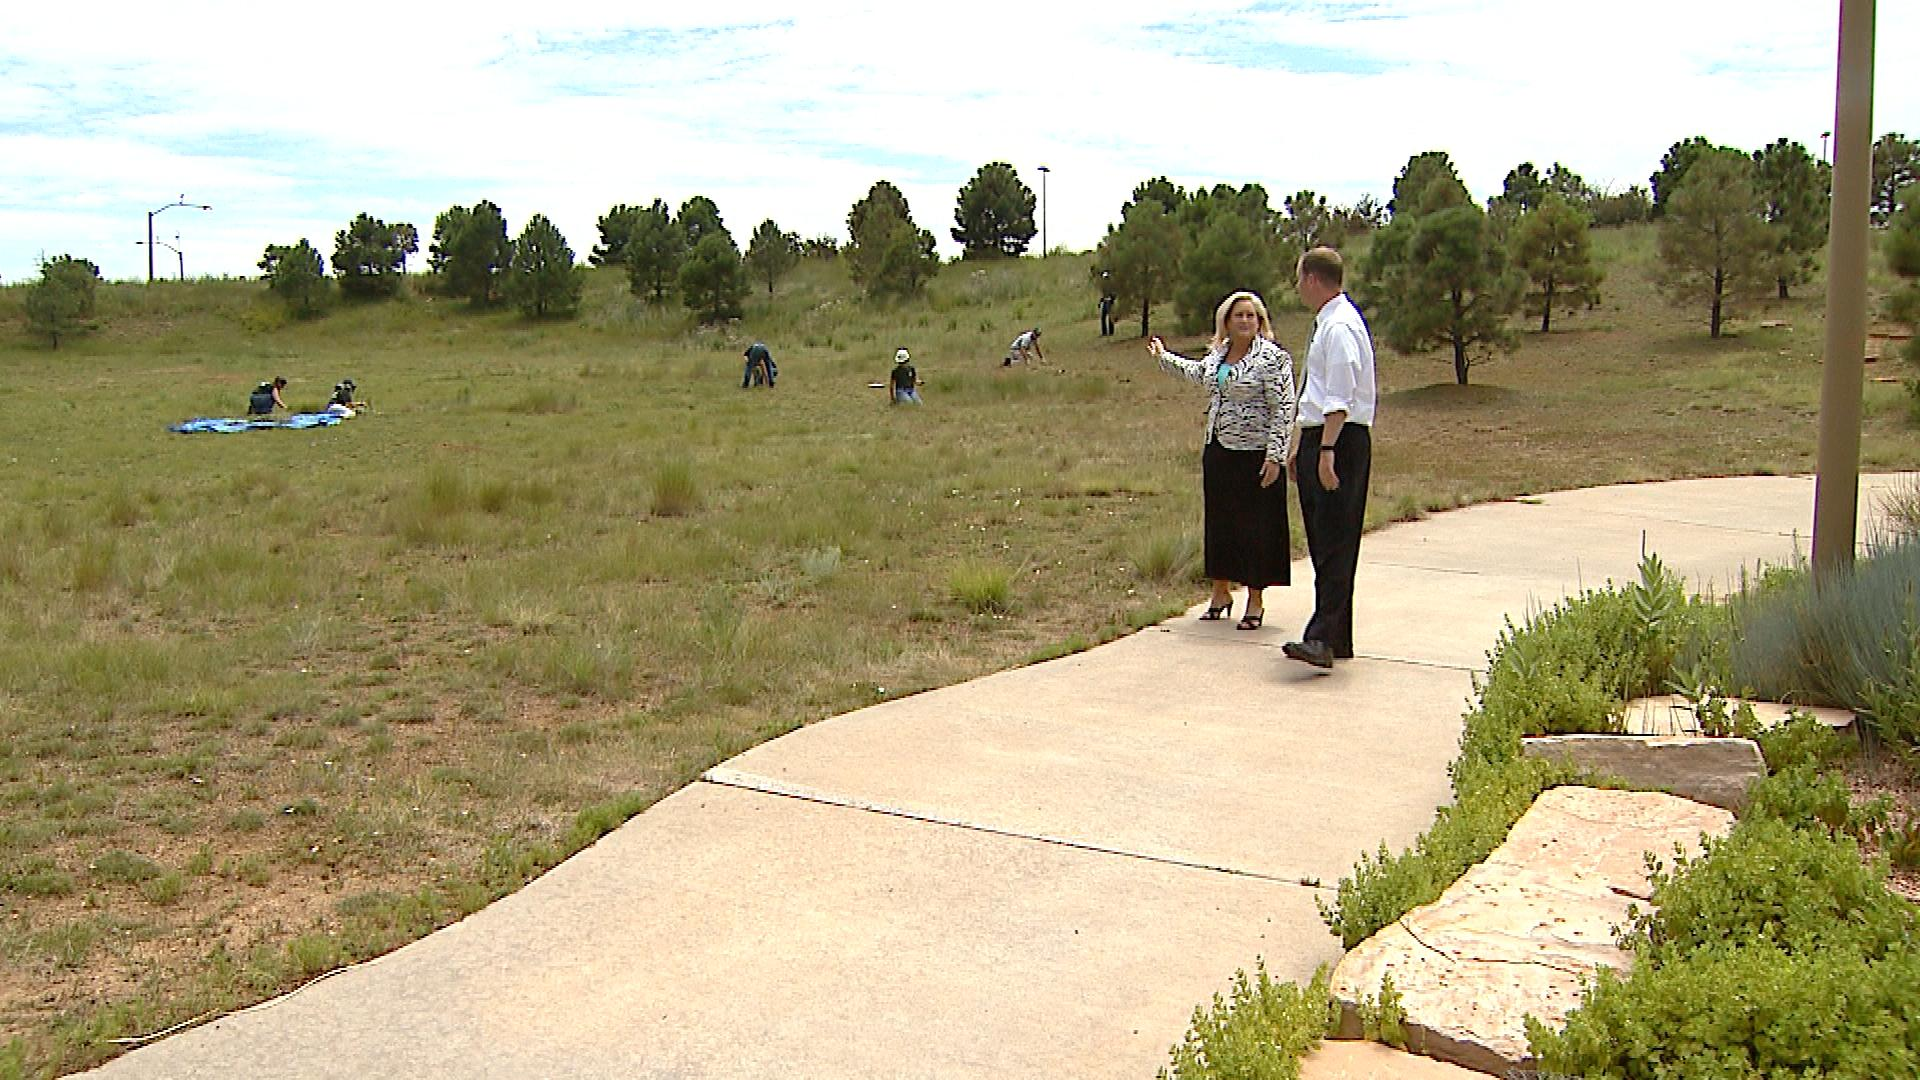 Kim Stuart with the City of Aurora shows CBS4's Jeff Todd the location picked for the permanent memorial (credit: CBS)